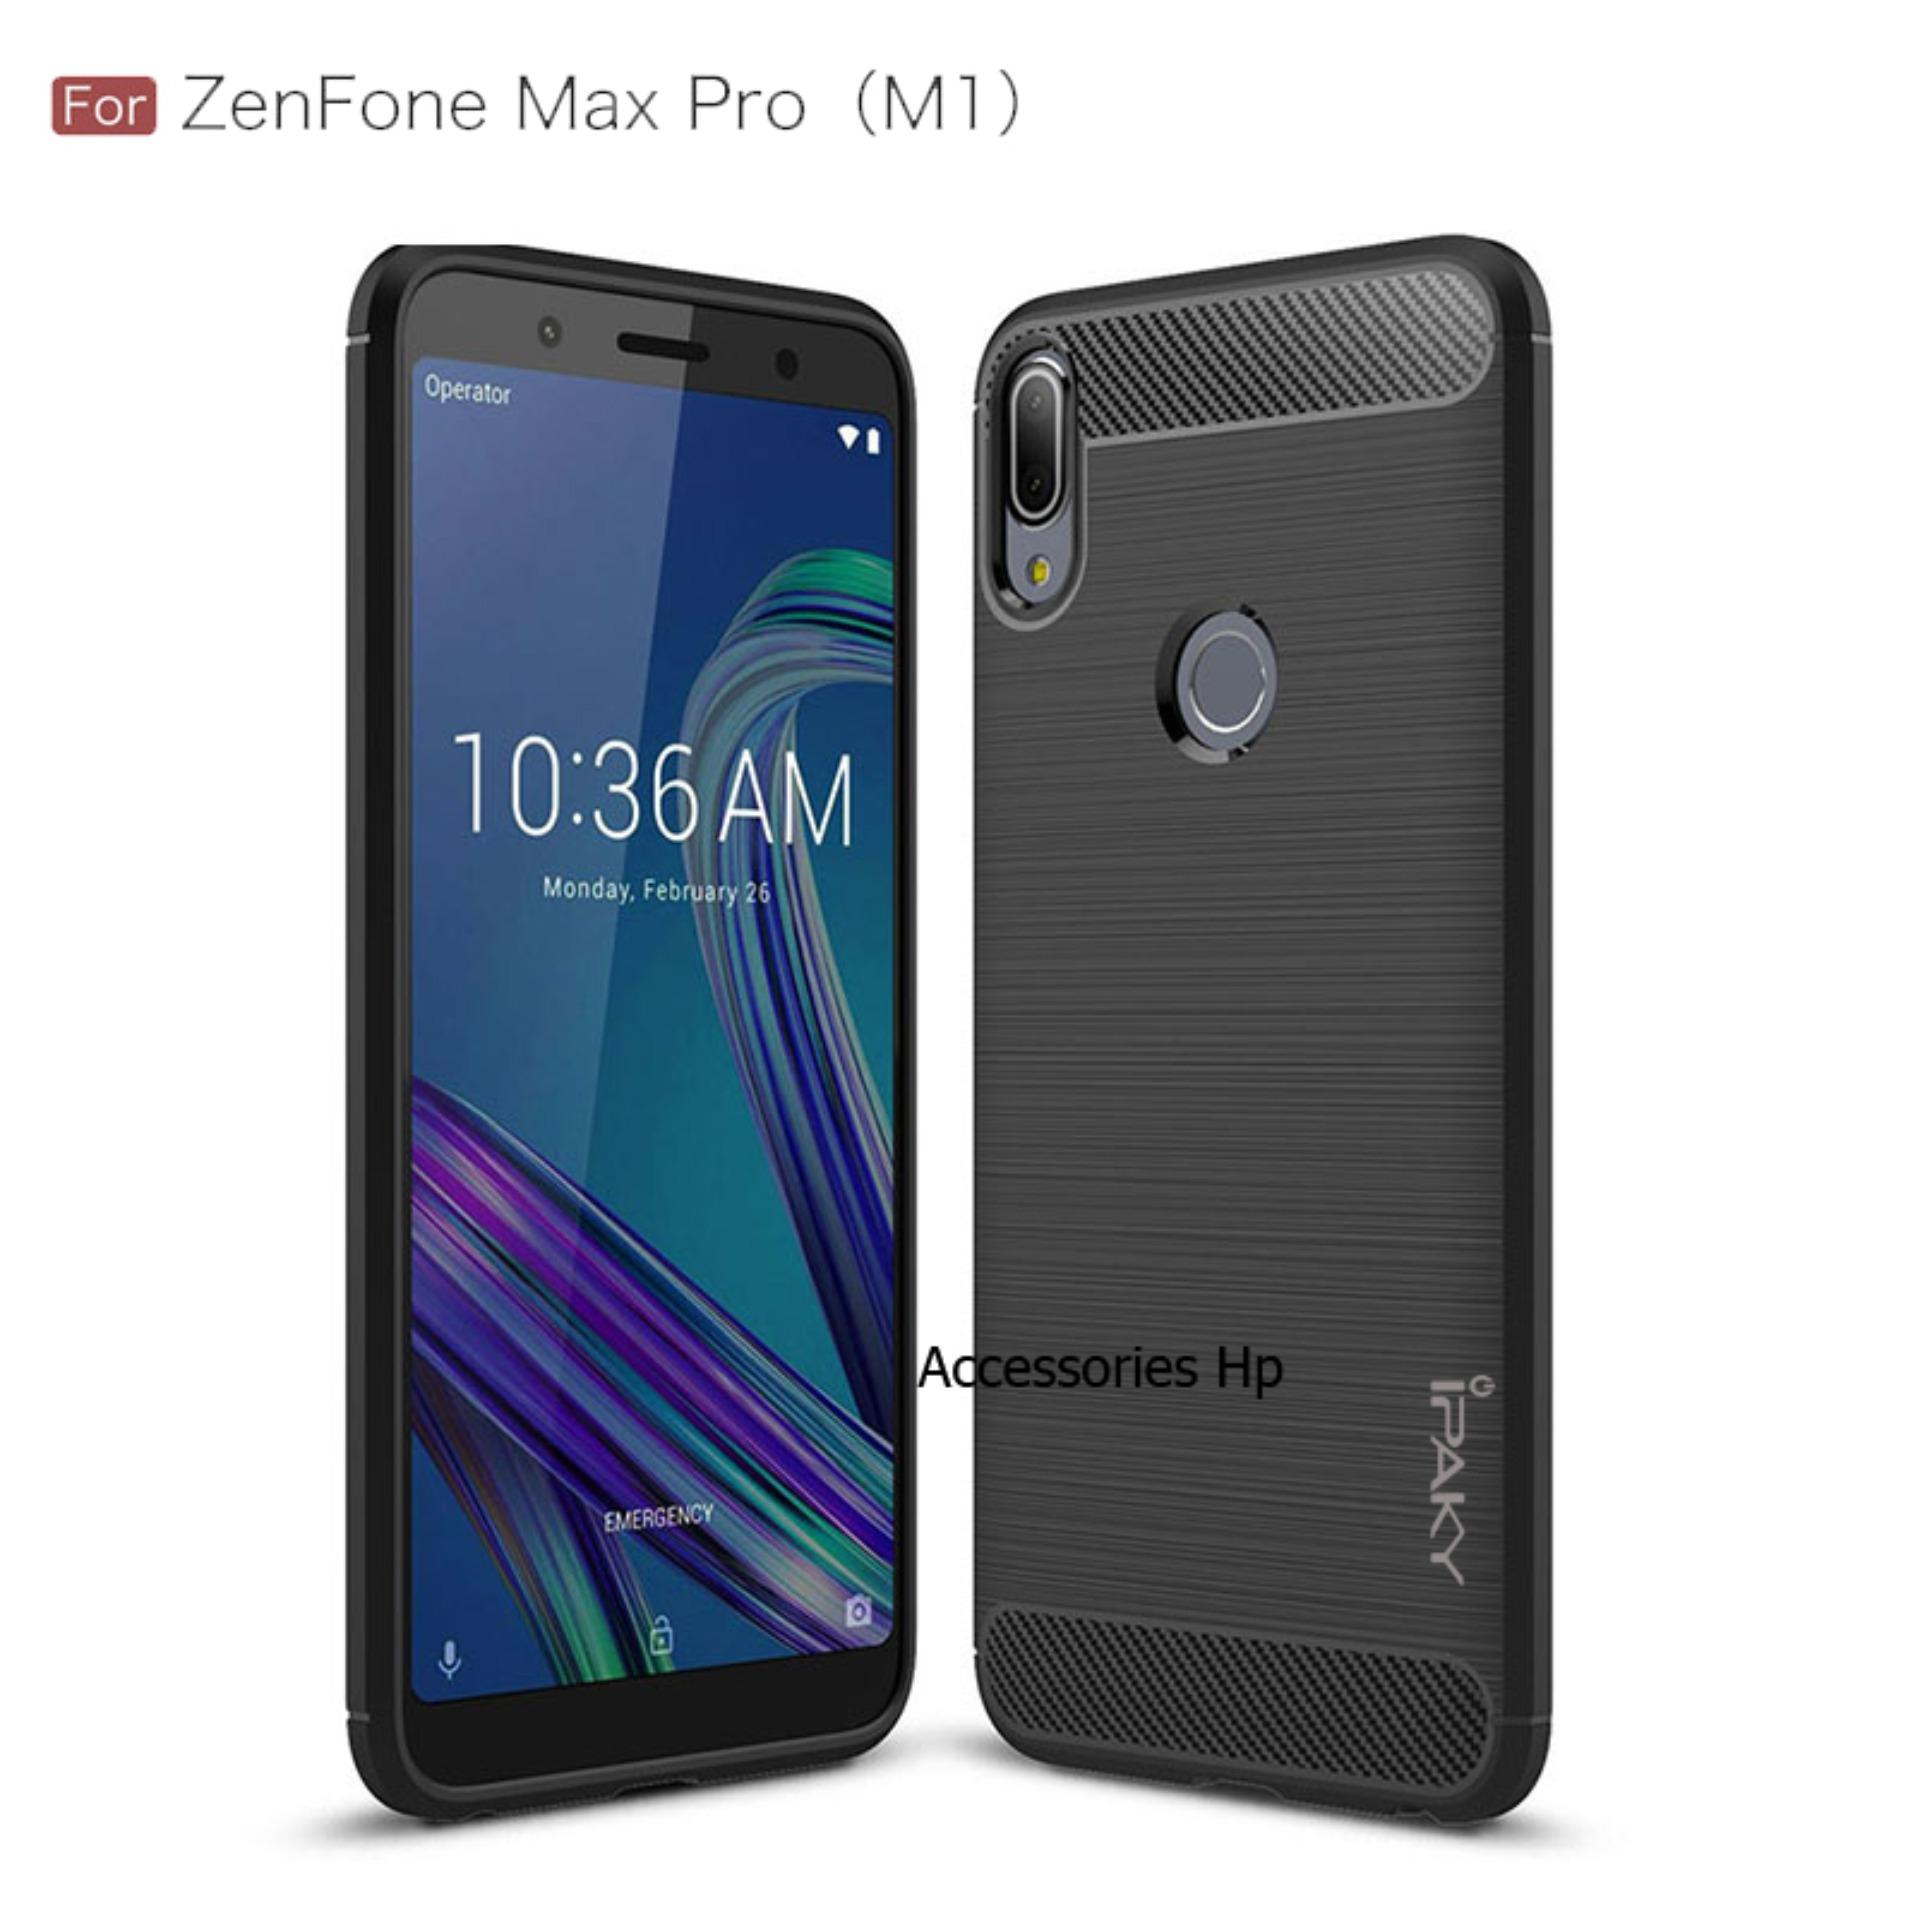 Accessories Hp Premium Quality Carbon Shockproof Hybrid Case For Asus Zenfone Max Pro M1 ZB602KL - Black